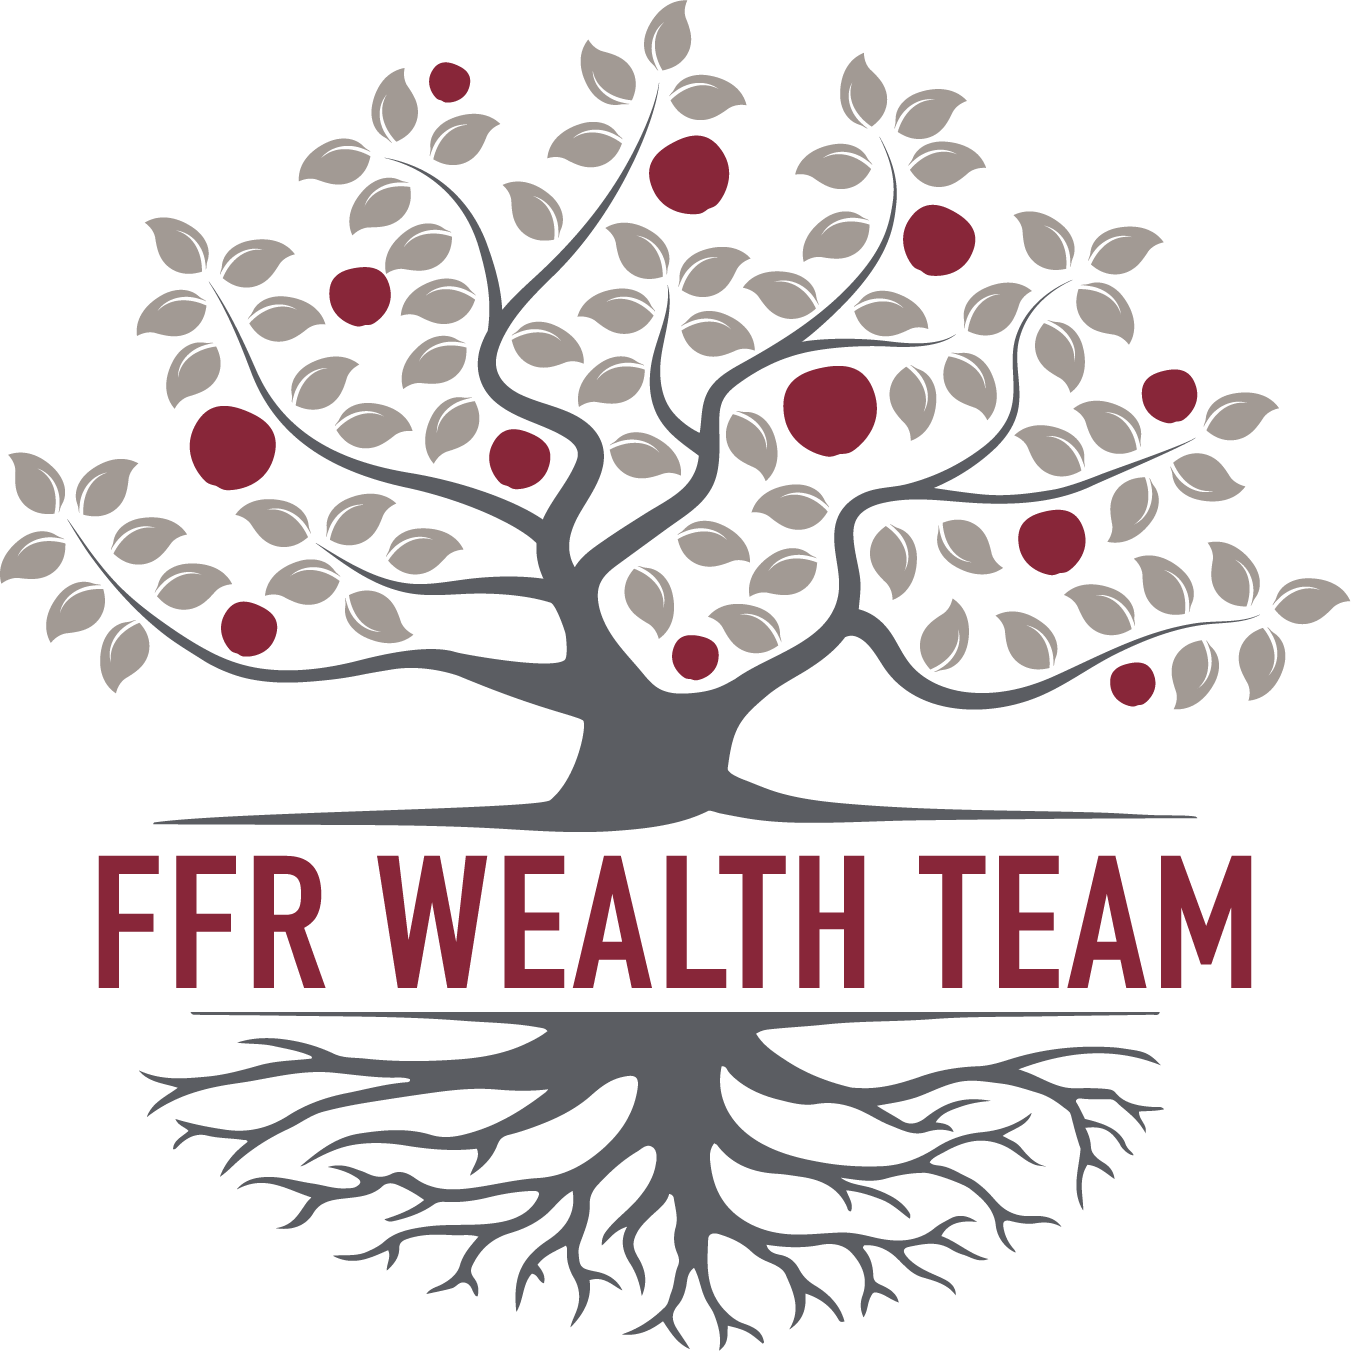 FFR Wealth Team